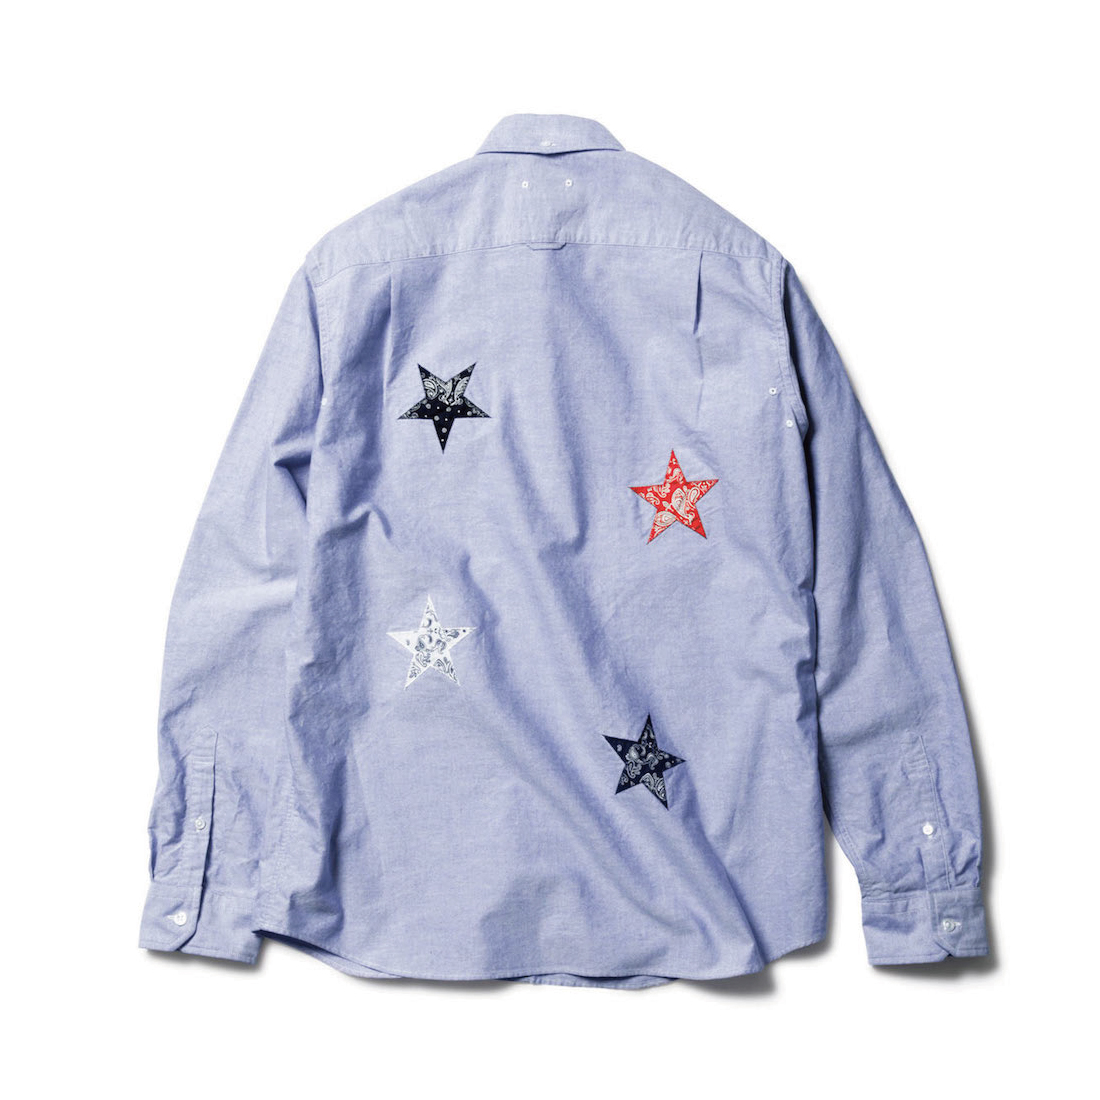 SOPHNET. / BANDANA STAR APPLIQUE B.D SHIRT -NAVY